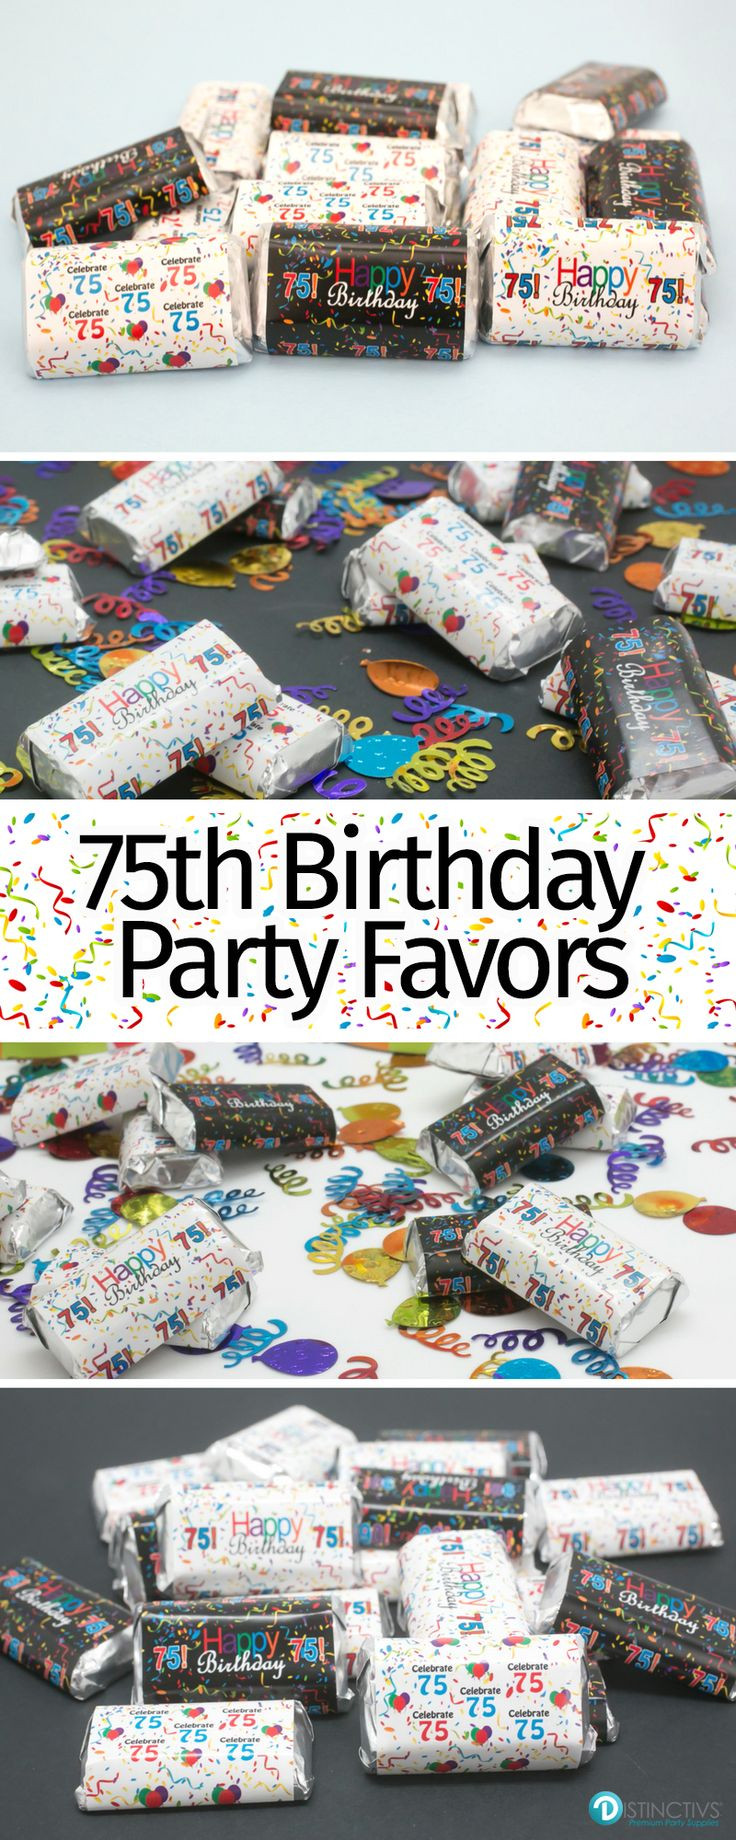 Best ideas about 75th Birthday Party Favors . Save or Pin 17 best ideas about 75th Birthday Parties on Pinterest Now.